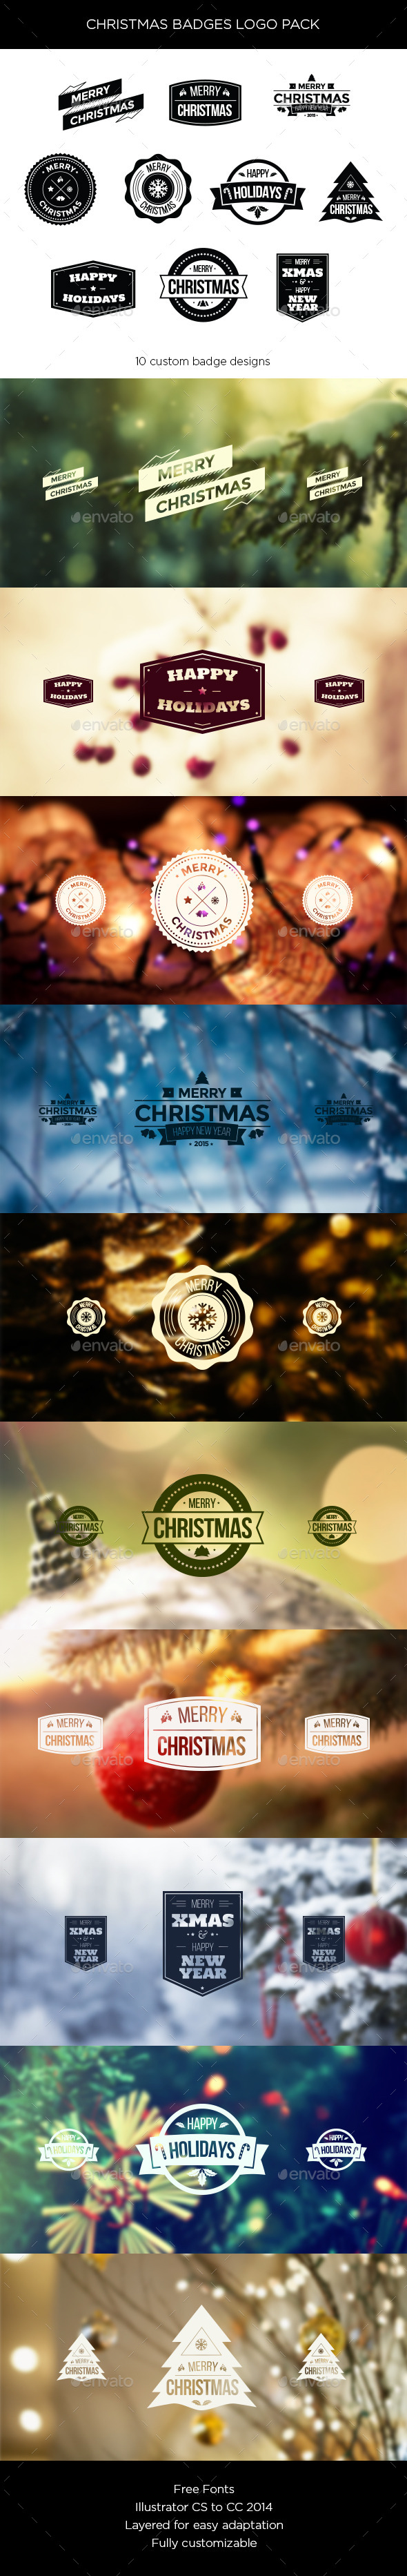 Christmas Badges Logo Pack - Christmas Seasons/Holidays